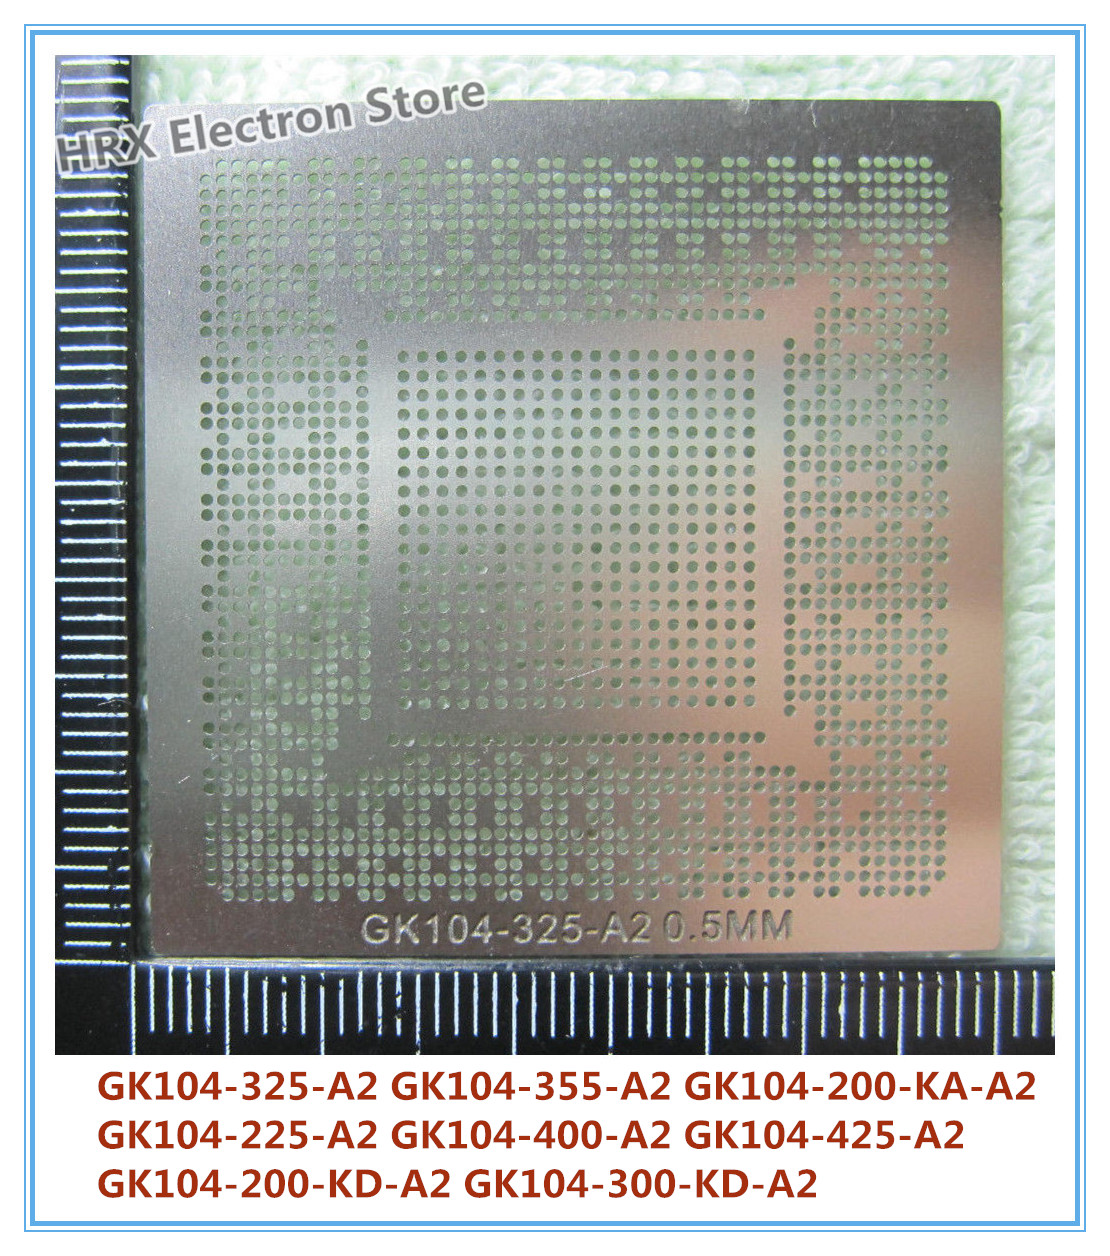 Integrated Circuits Direct Heating Gk104-325-a2 Gk104-400-a2 Gk104-200-kd-a2 Gk104-300-kd-a2 N13e-gt-w-a2 N13e-gtx-a2 N14e-gtx-a2 Stencil Active Components